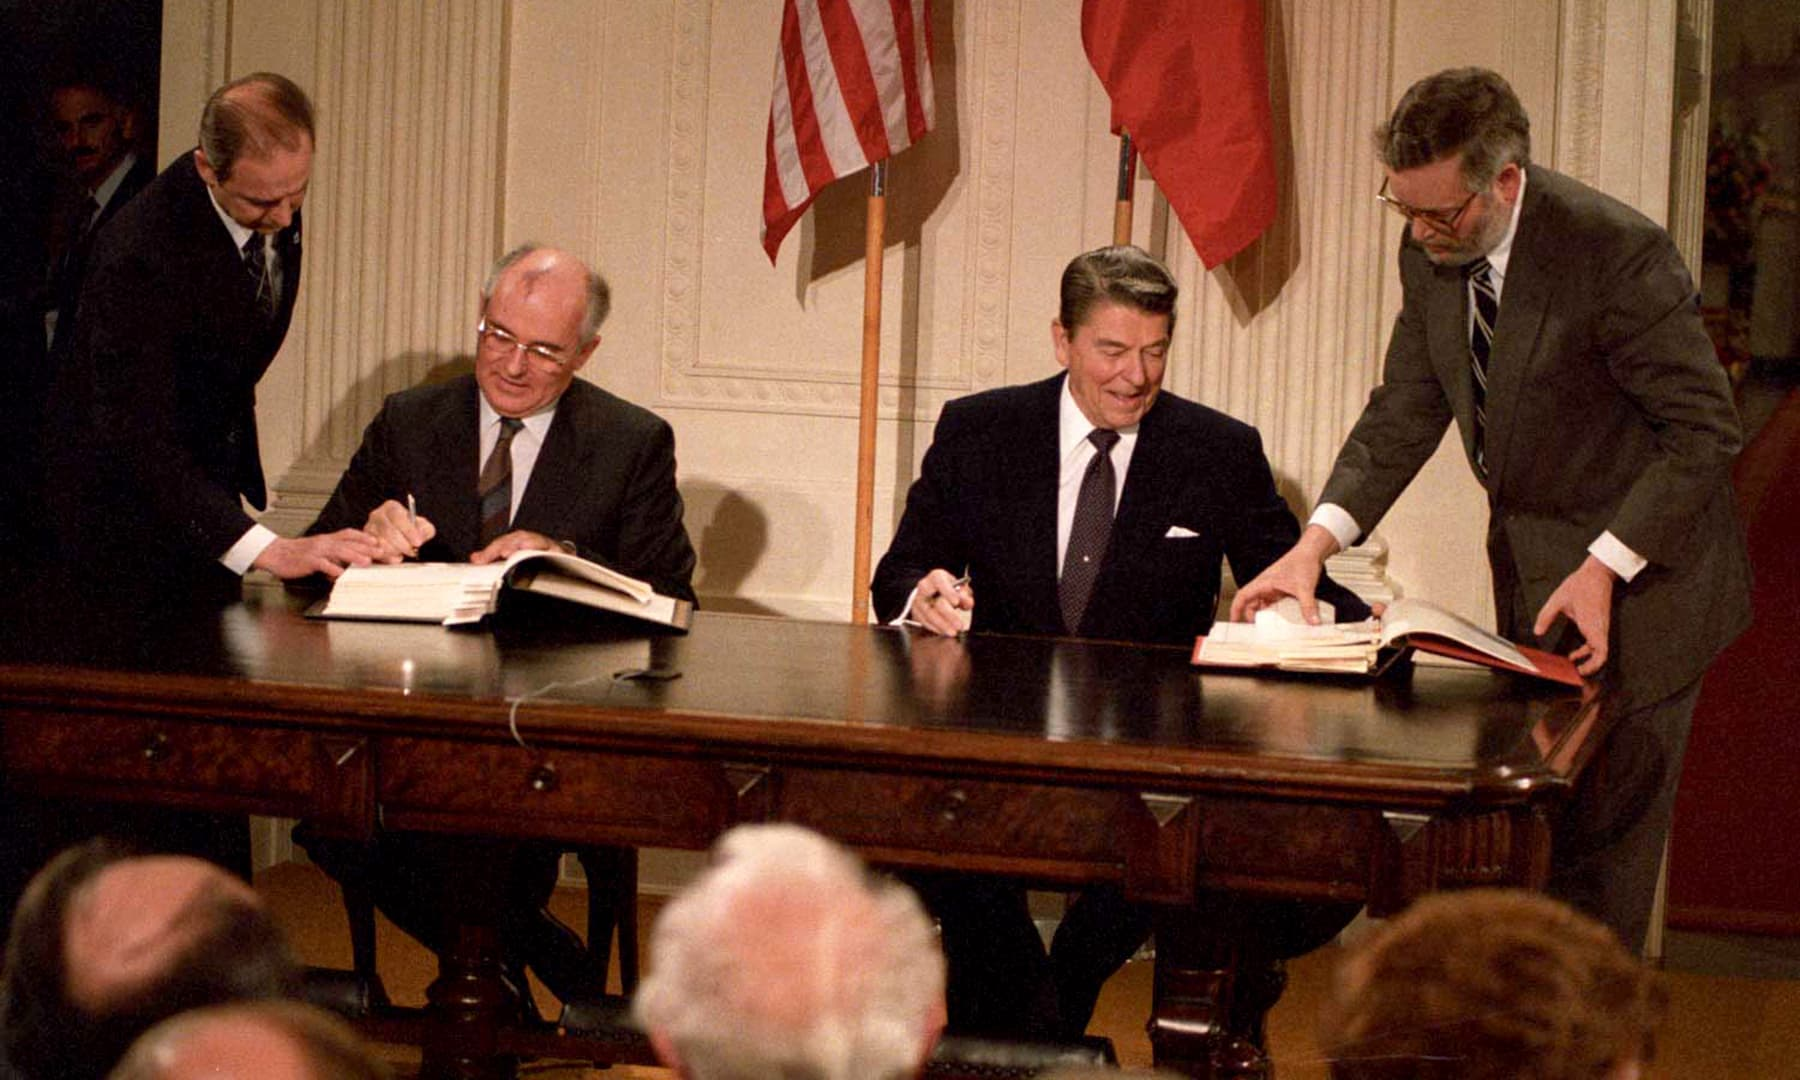 US President Ronald Reagan (right) and Soviet President Mikhail Gorbachev sign the Intermediate-Range Nuclear Forces Treaty in the White House in December 1987. The treaty, meant to limit the threat of nuclear weapons, has handed China an advantage. — Reuters